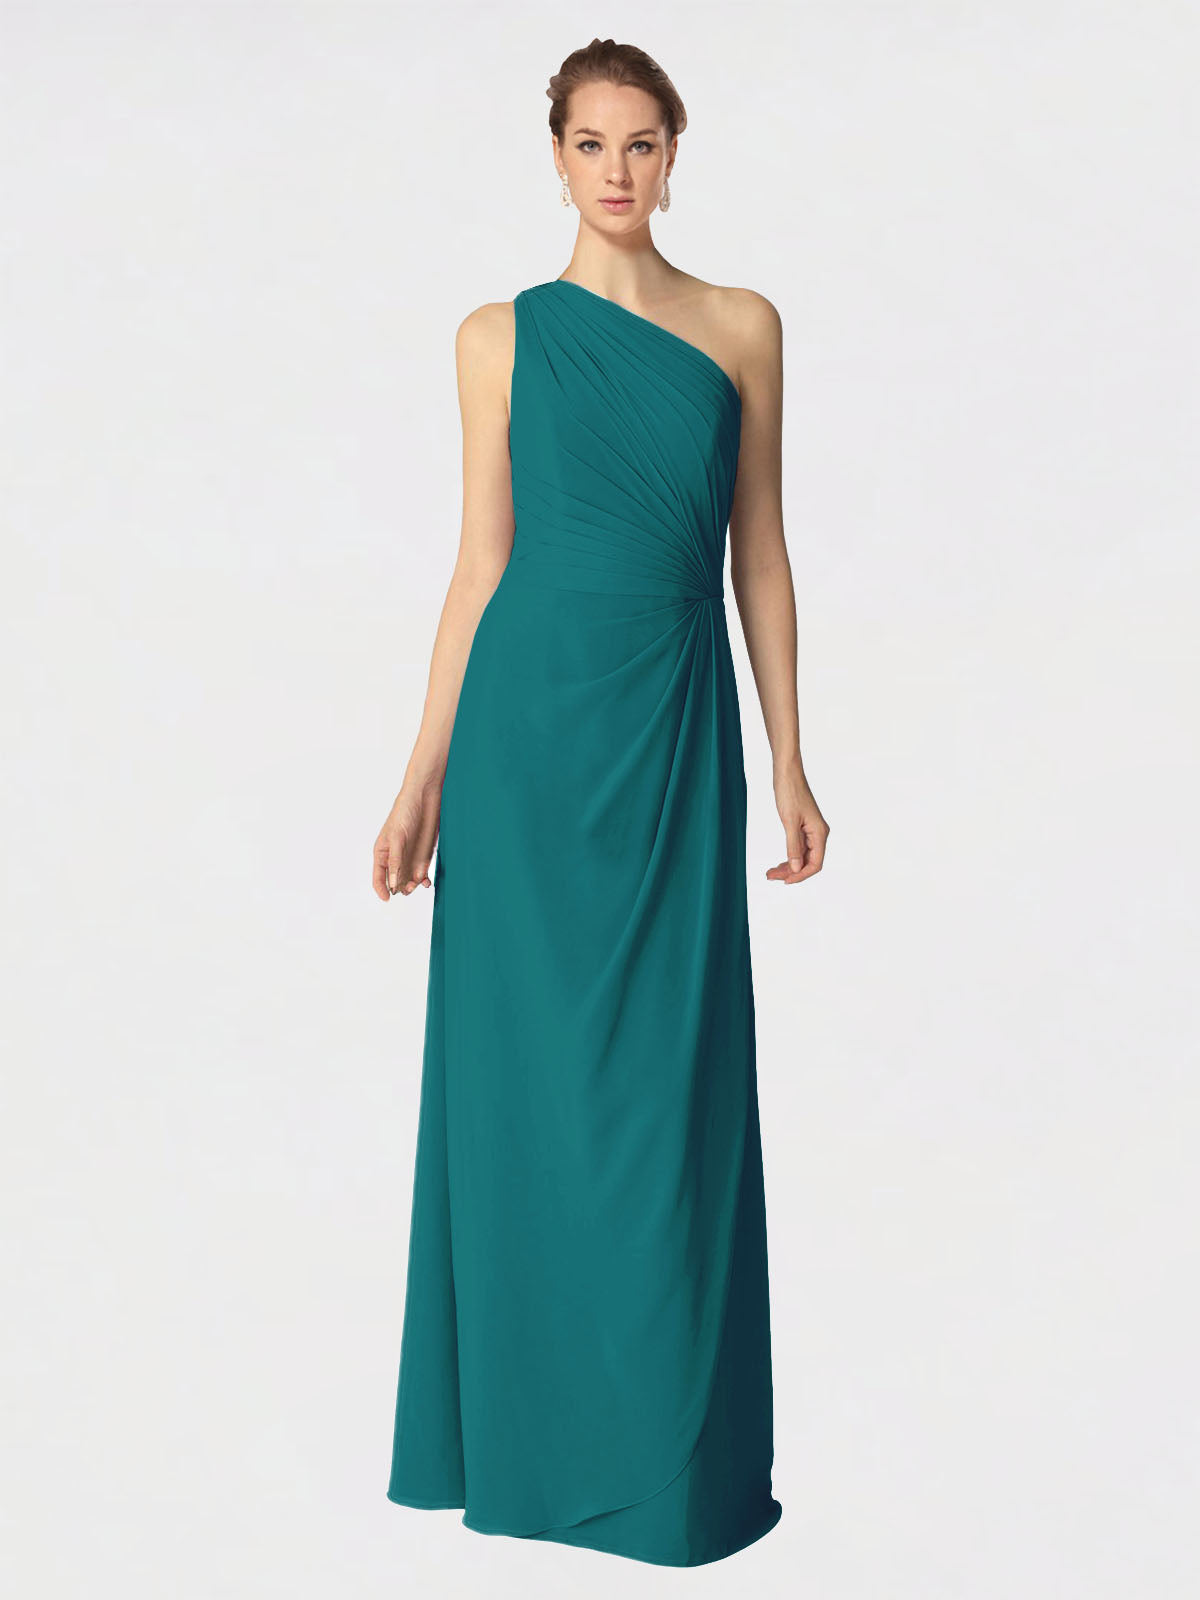 Long A-Line One Shoulder Sleeveless Hunter Chiffon Bridesmaid Dress Aurora